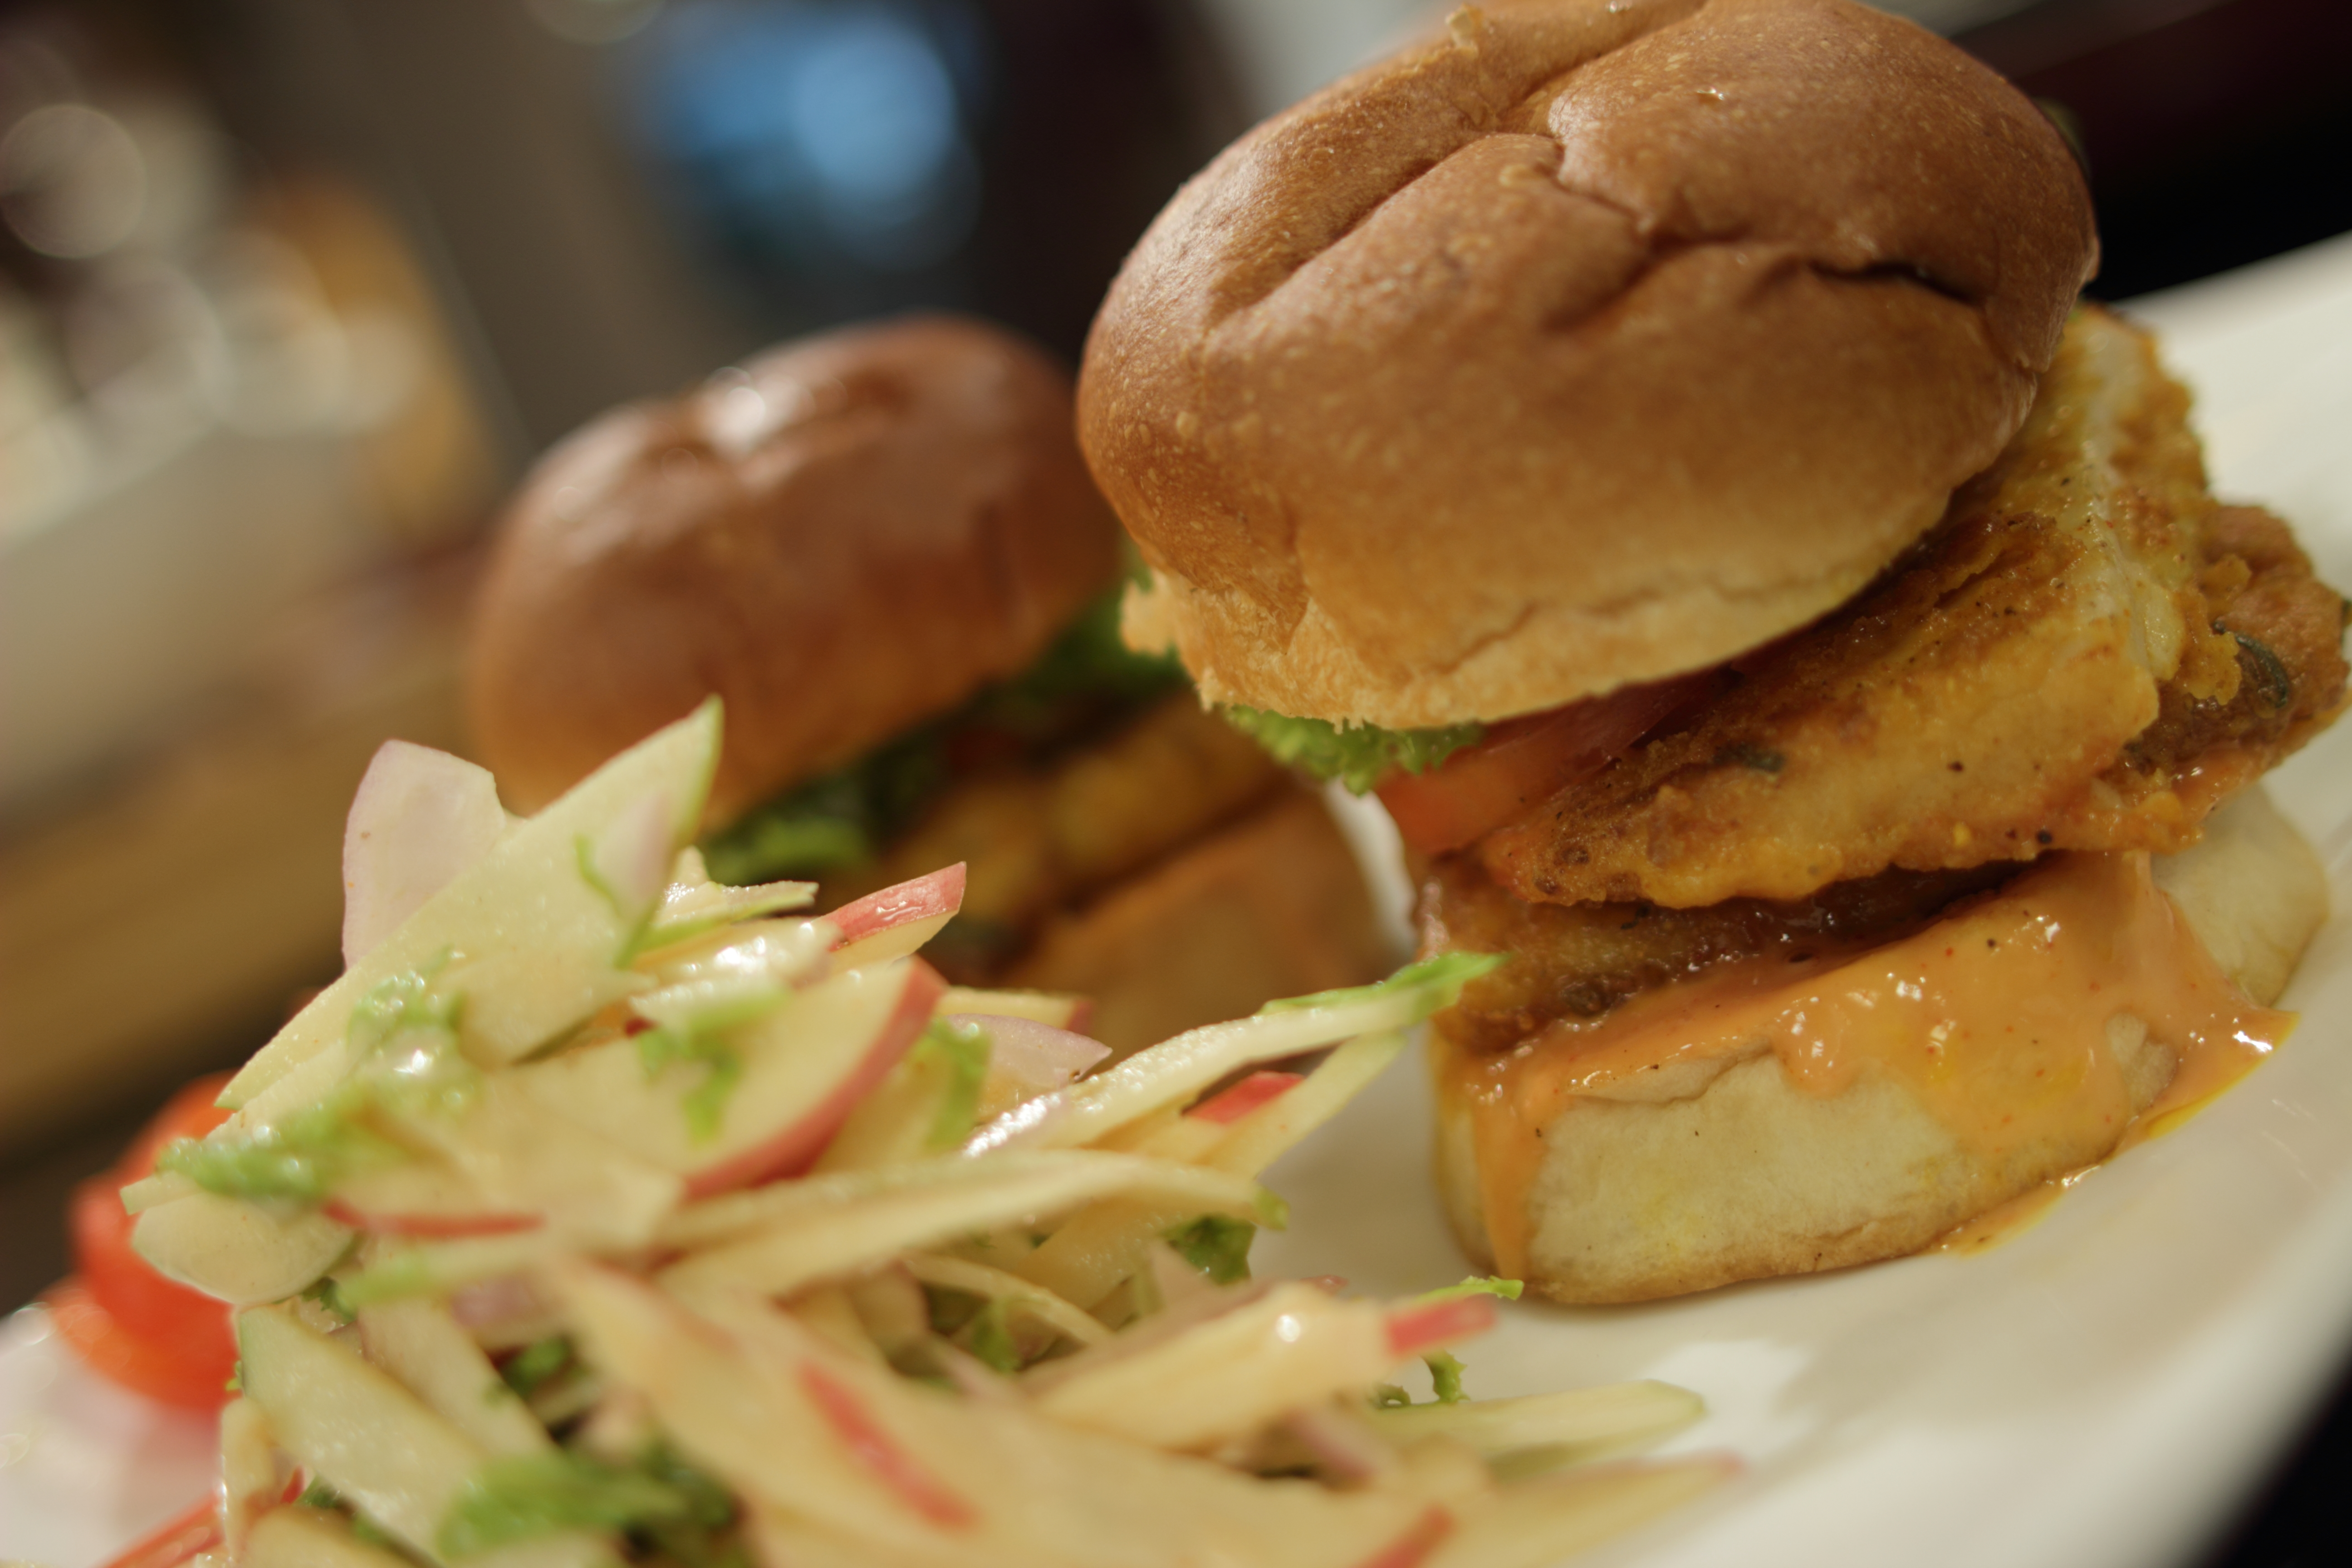 Chicken and Fish Burger